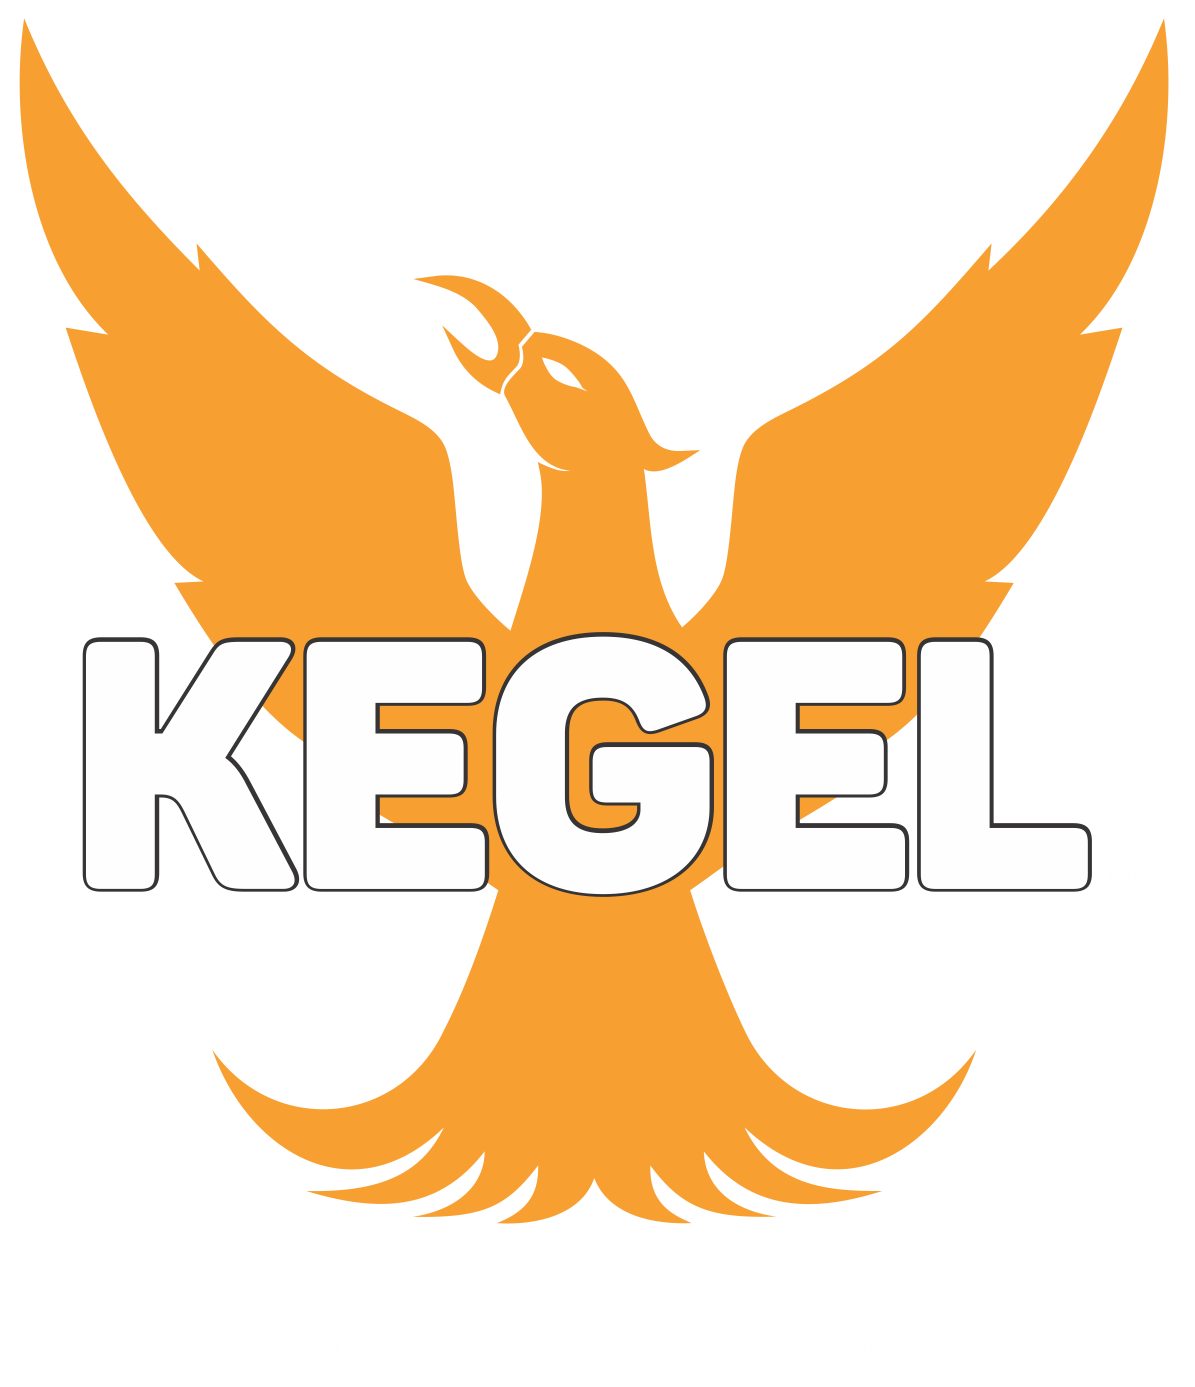 Kegel_NewLogo-small-white-slogan.png